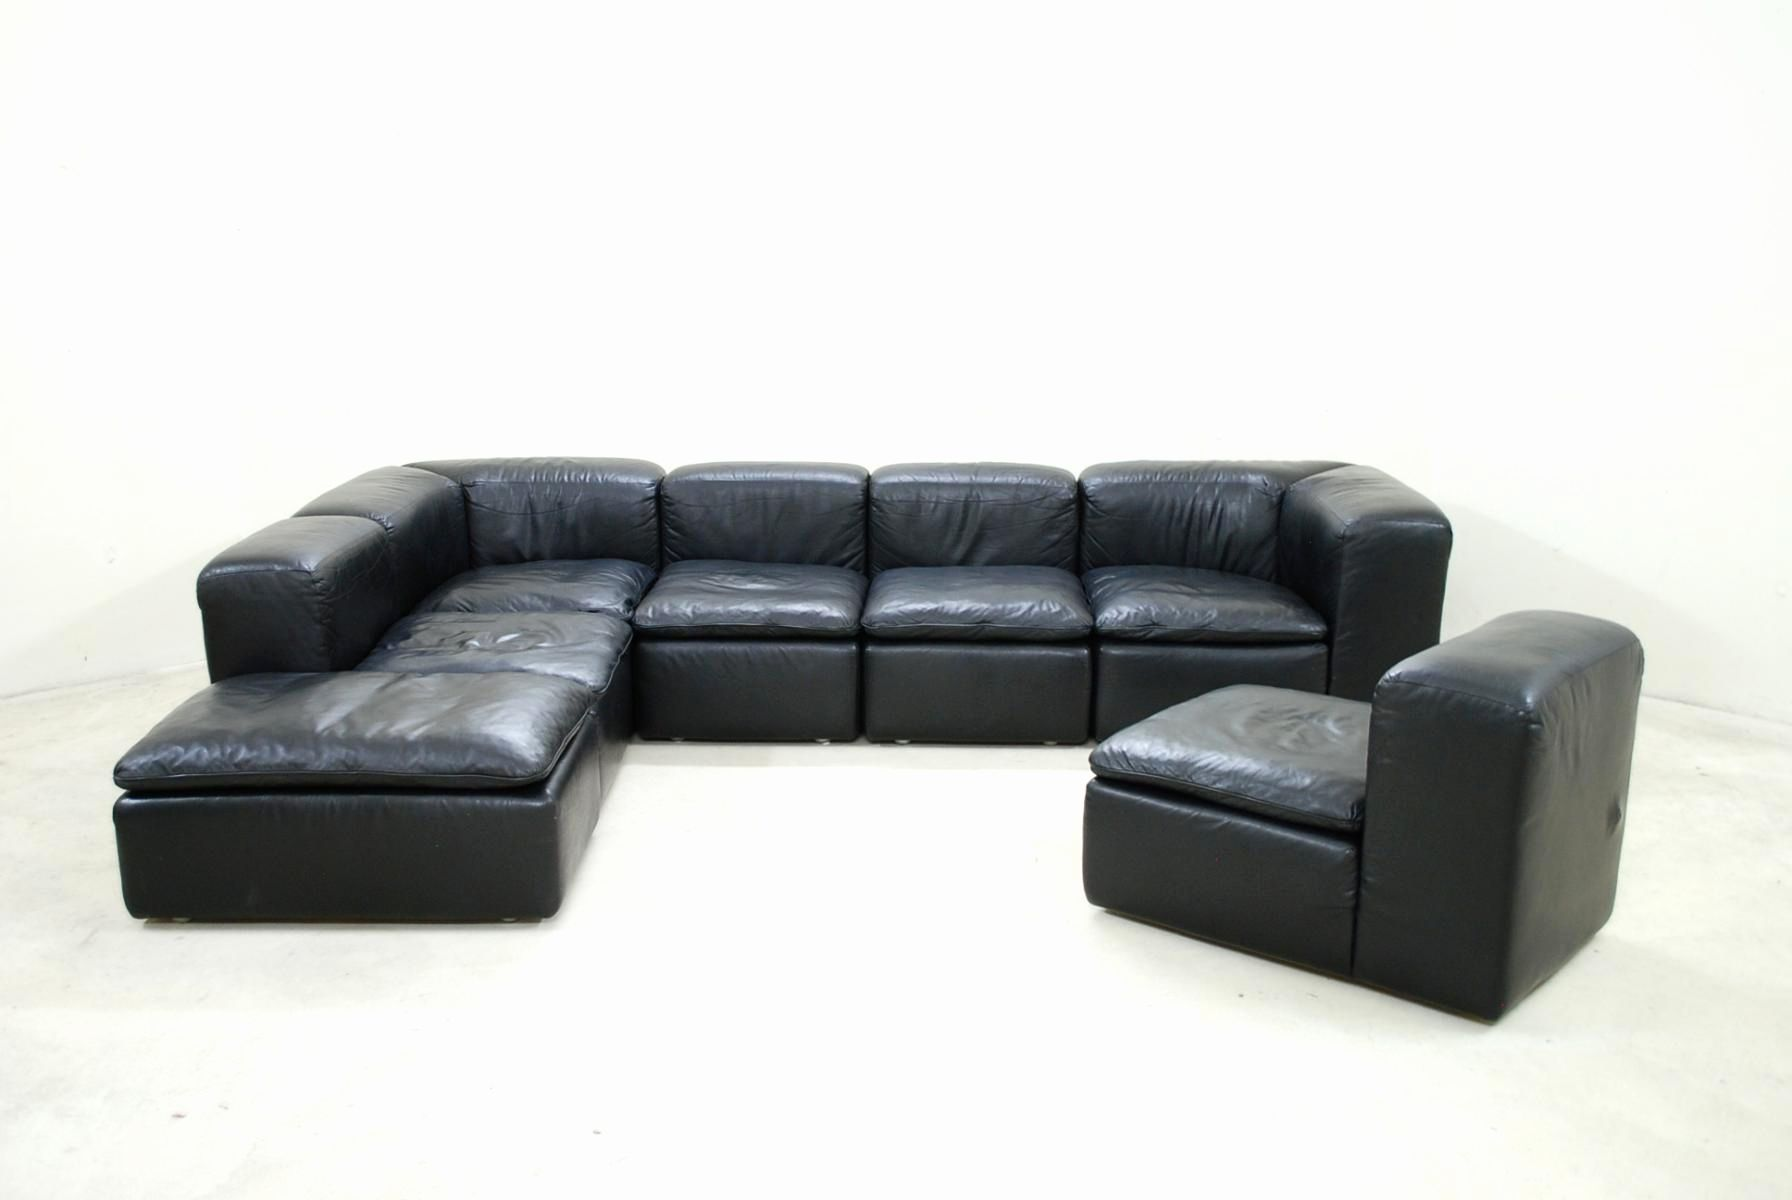 Unique Leather Modular Sofa Pictures Vintage Oropendolaperu Check More At Http